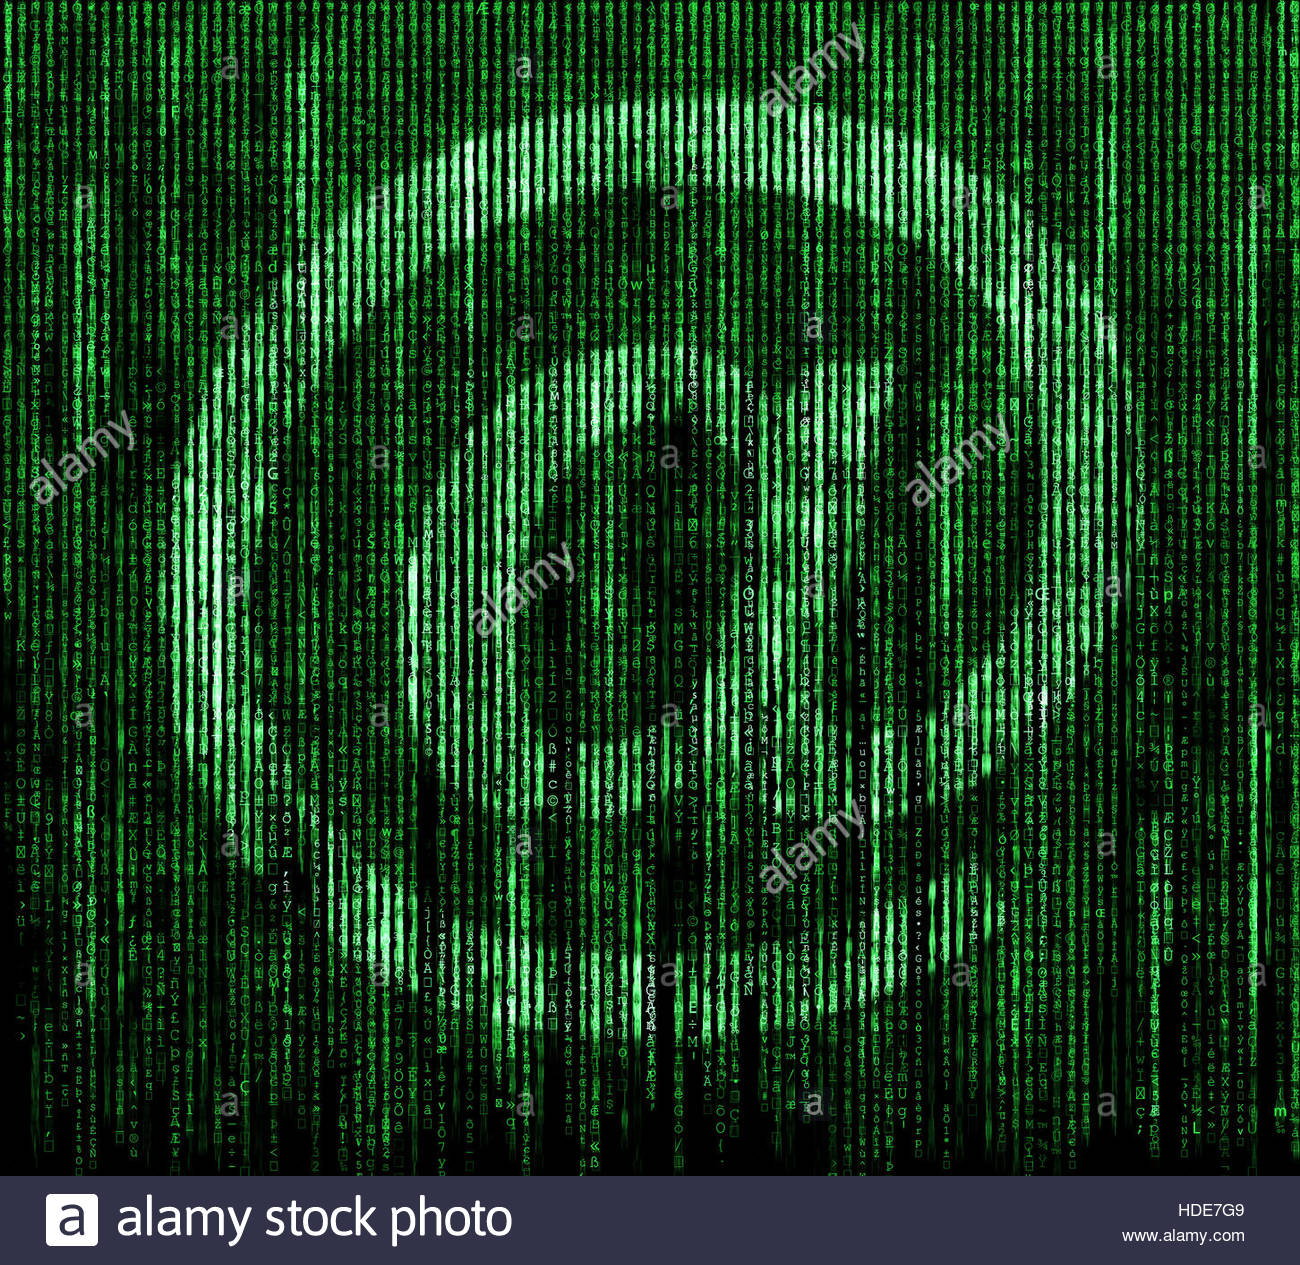 e-mail matrix background - Stock Image